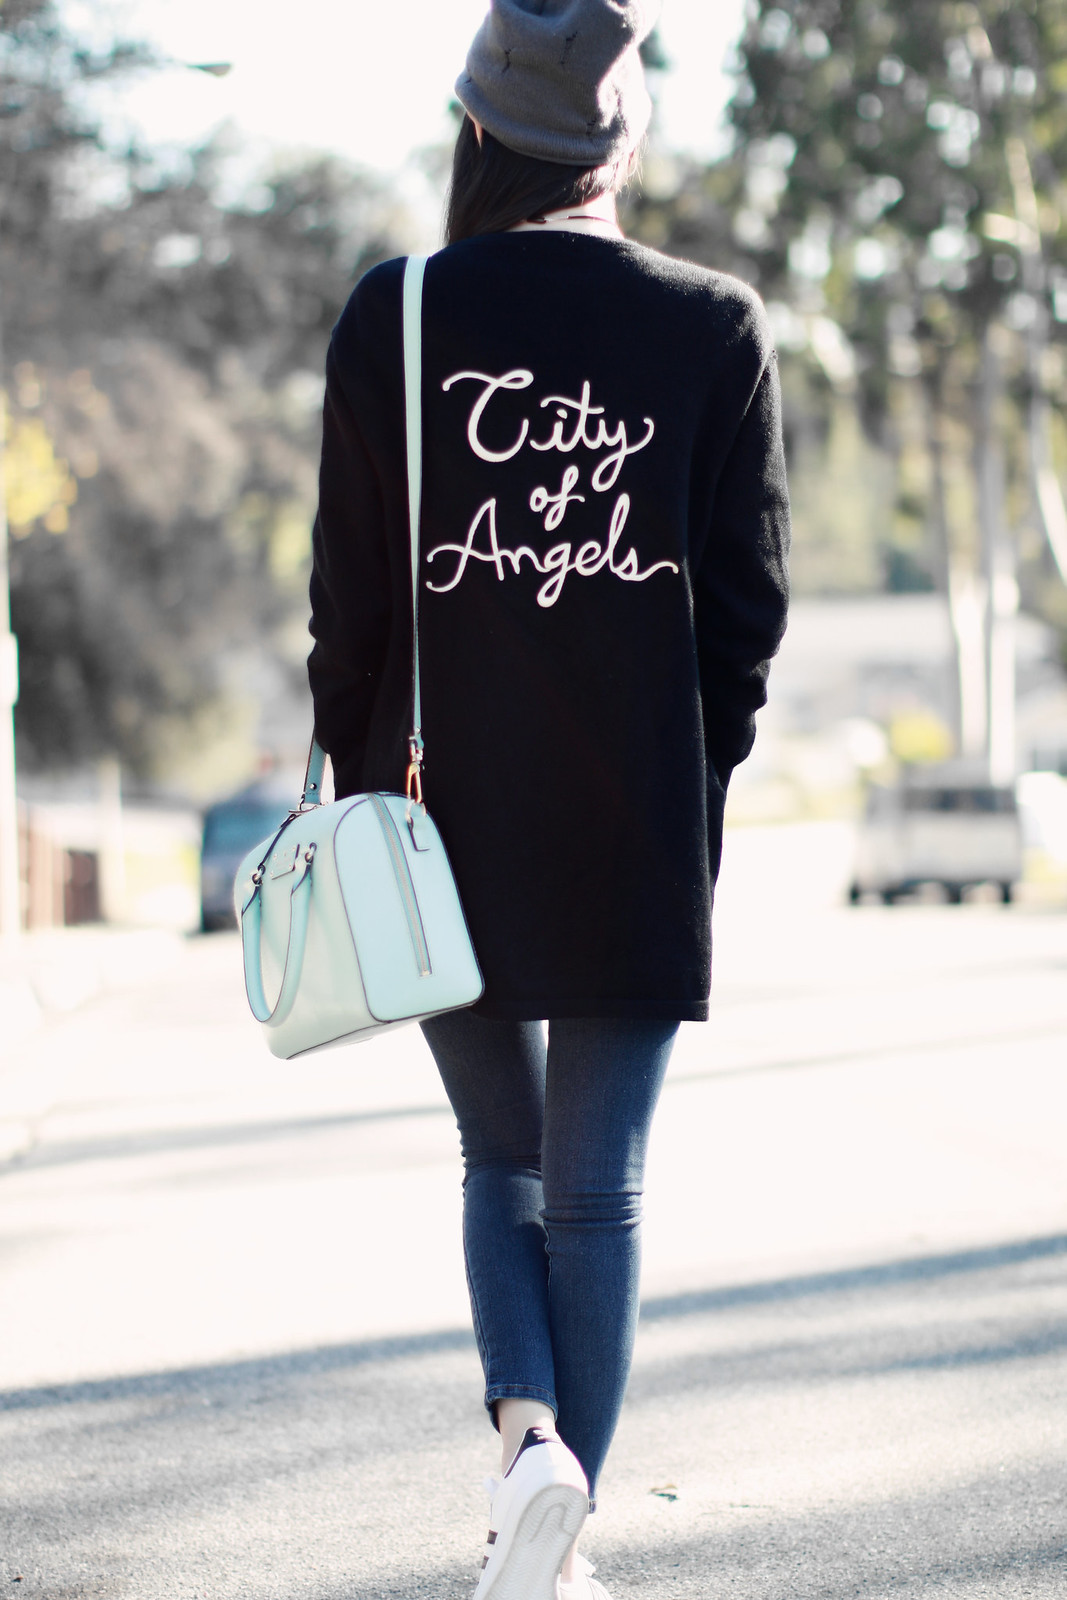 1749-ootd-fashion-embroidered-cardigan-los-angeles-city-of-angels-adidas-forever21-winterfashion-outfitoftheday-clothestoyouuu-elizabeeetht